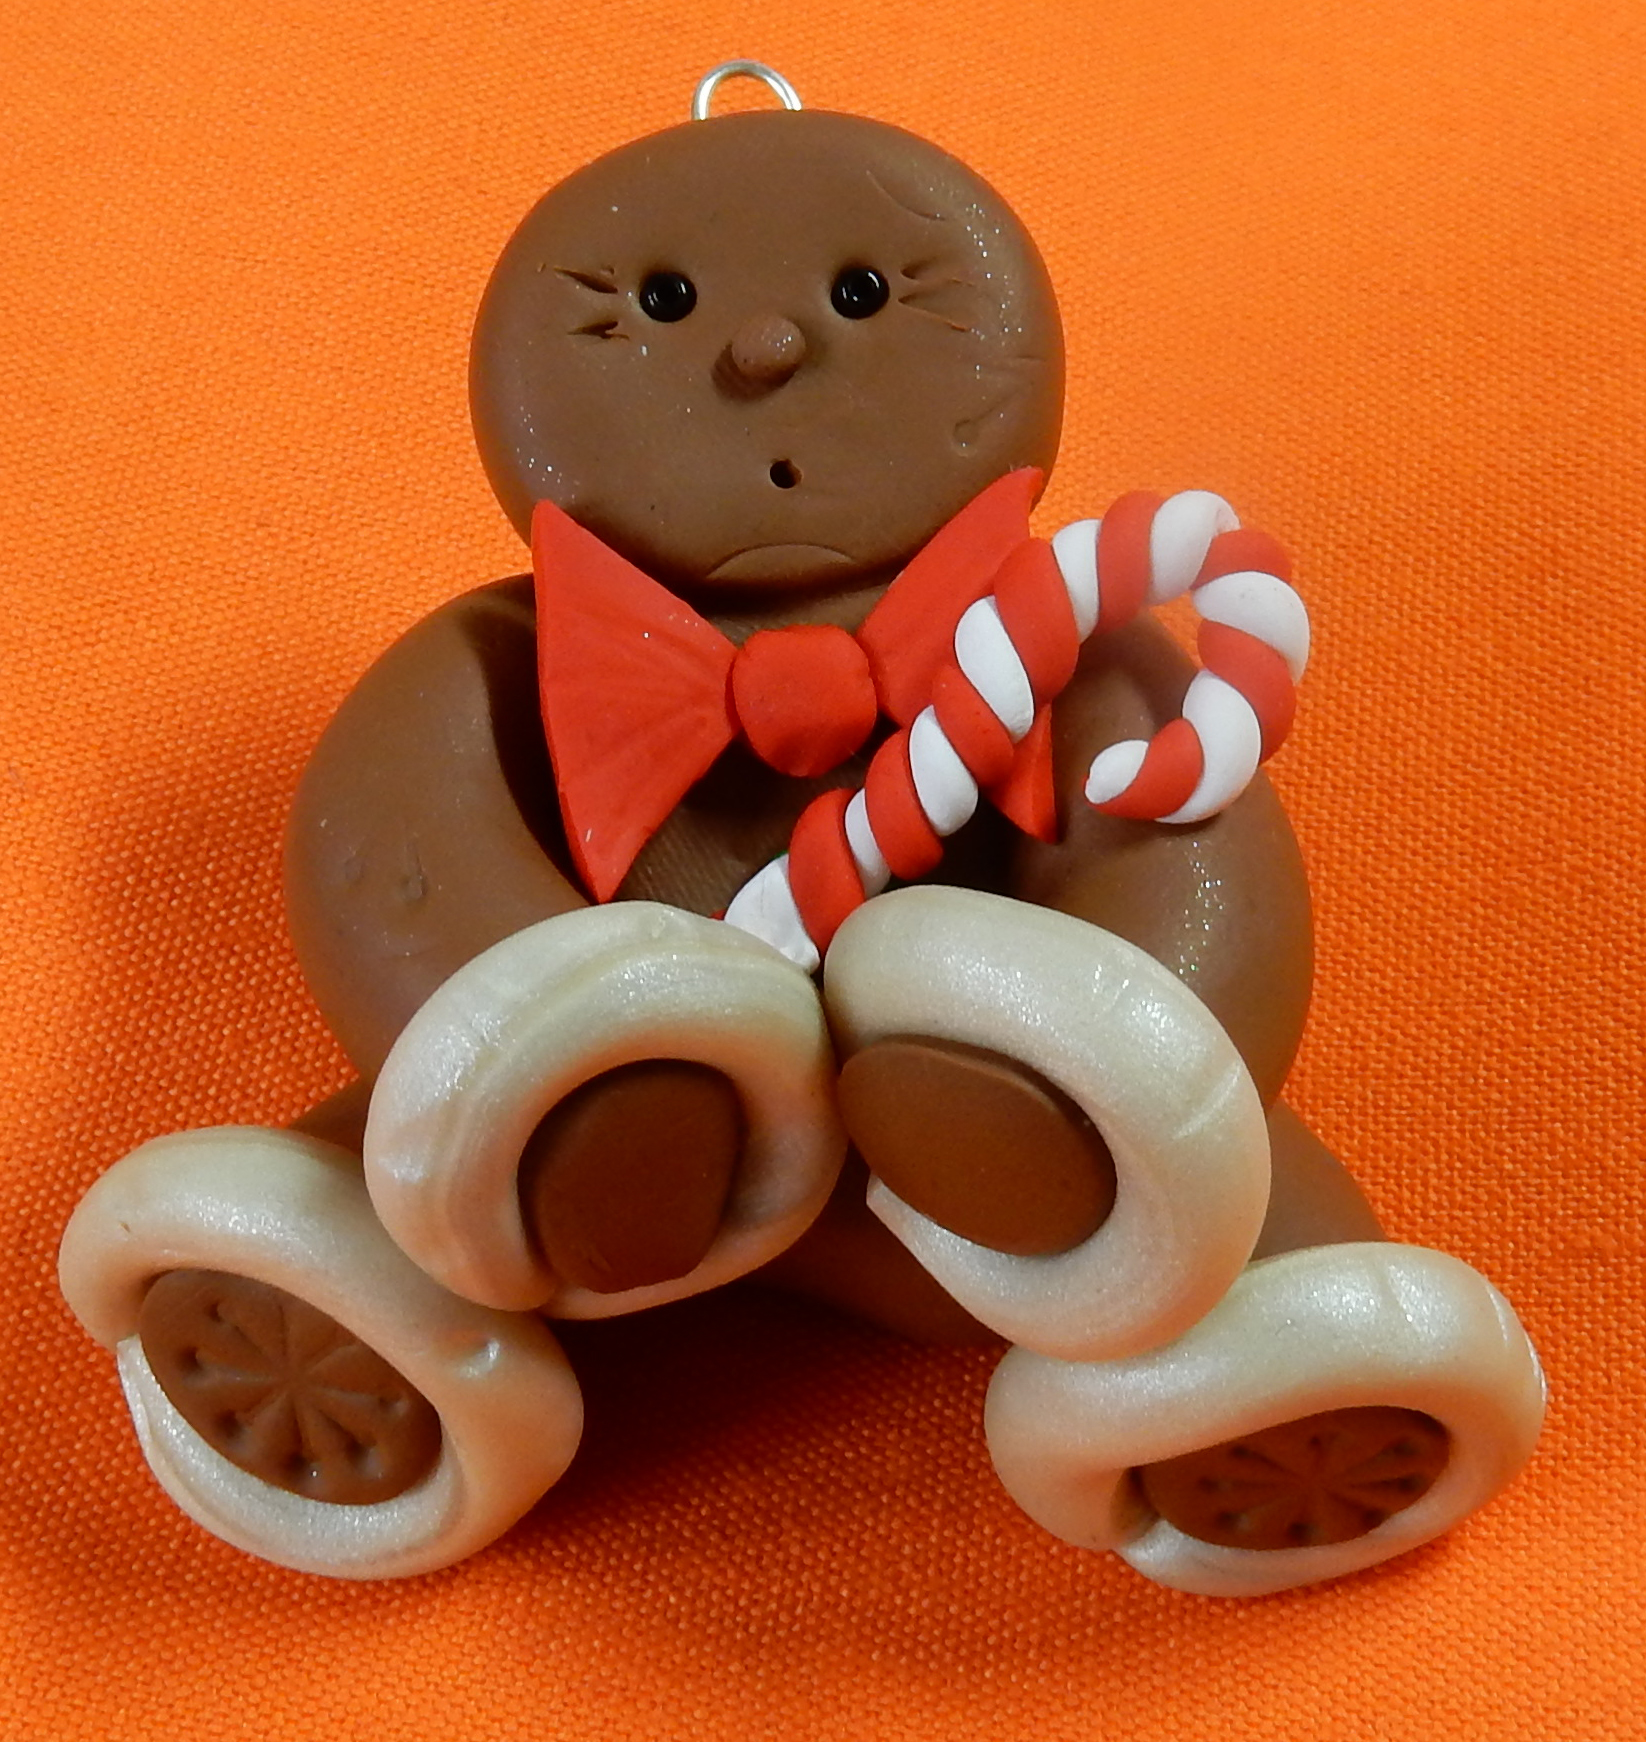 Mr Gingerbread with bow tie and candy cane